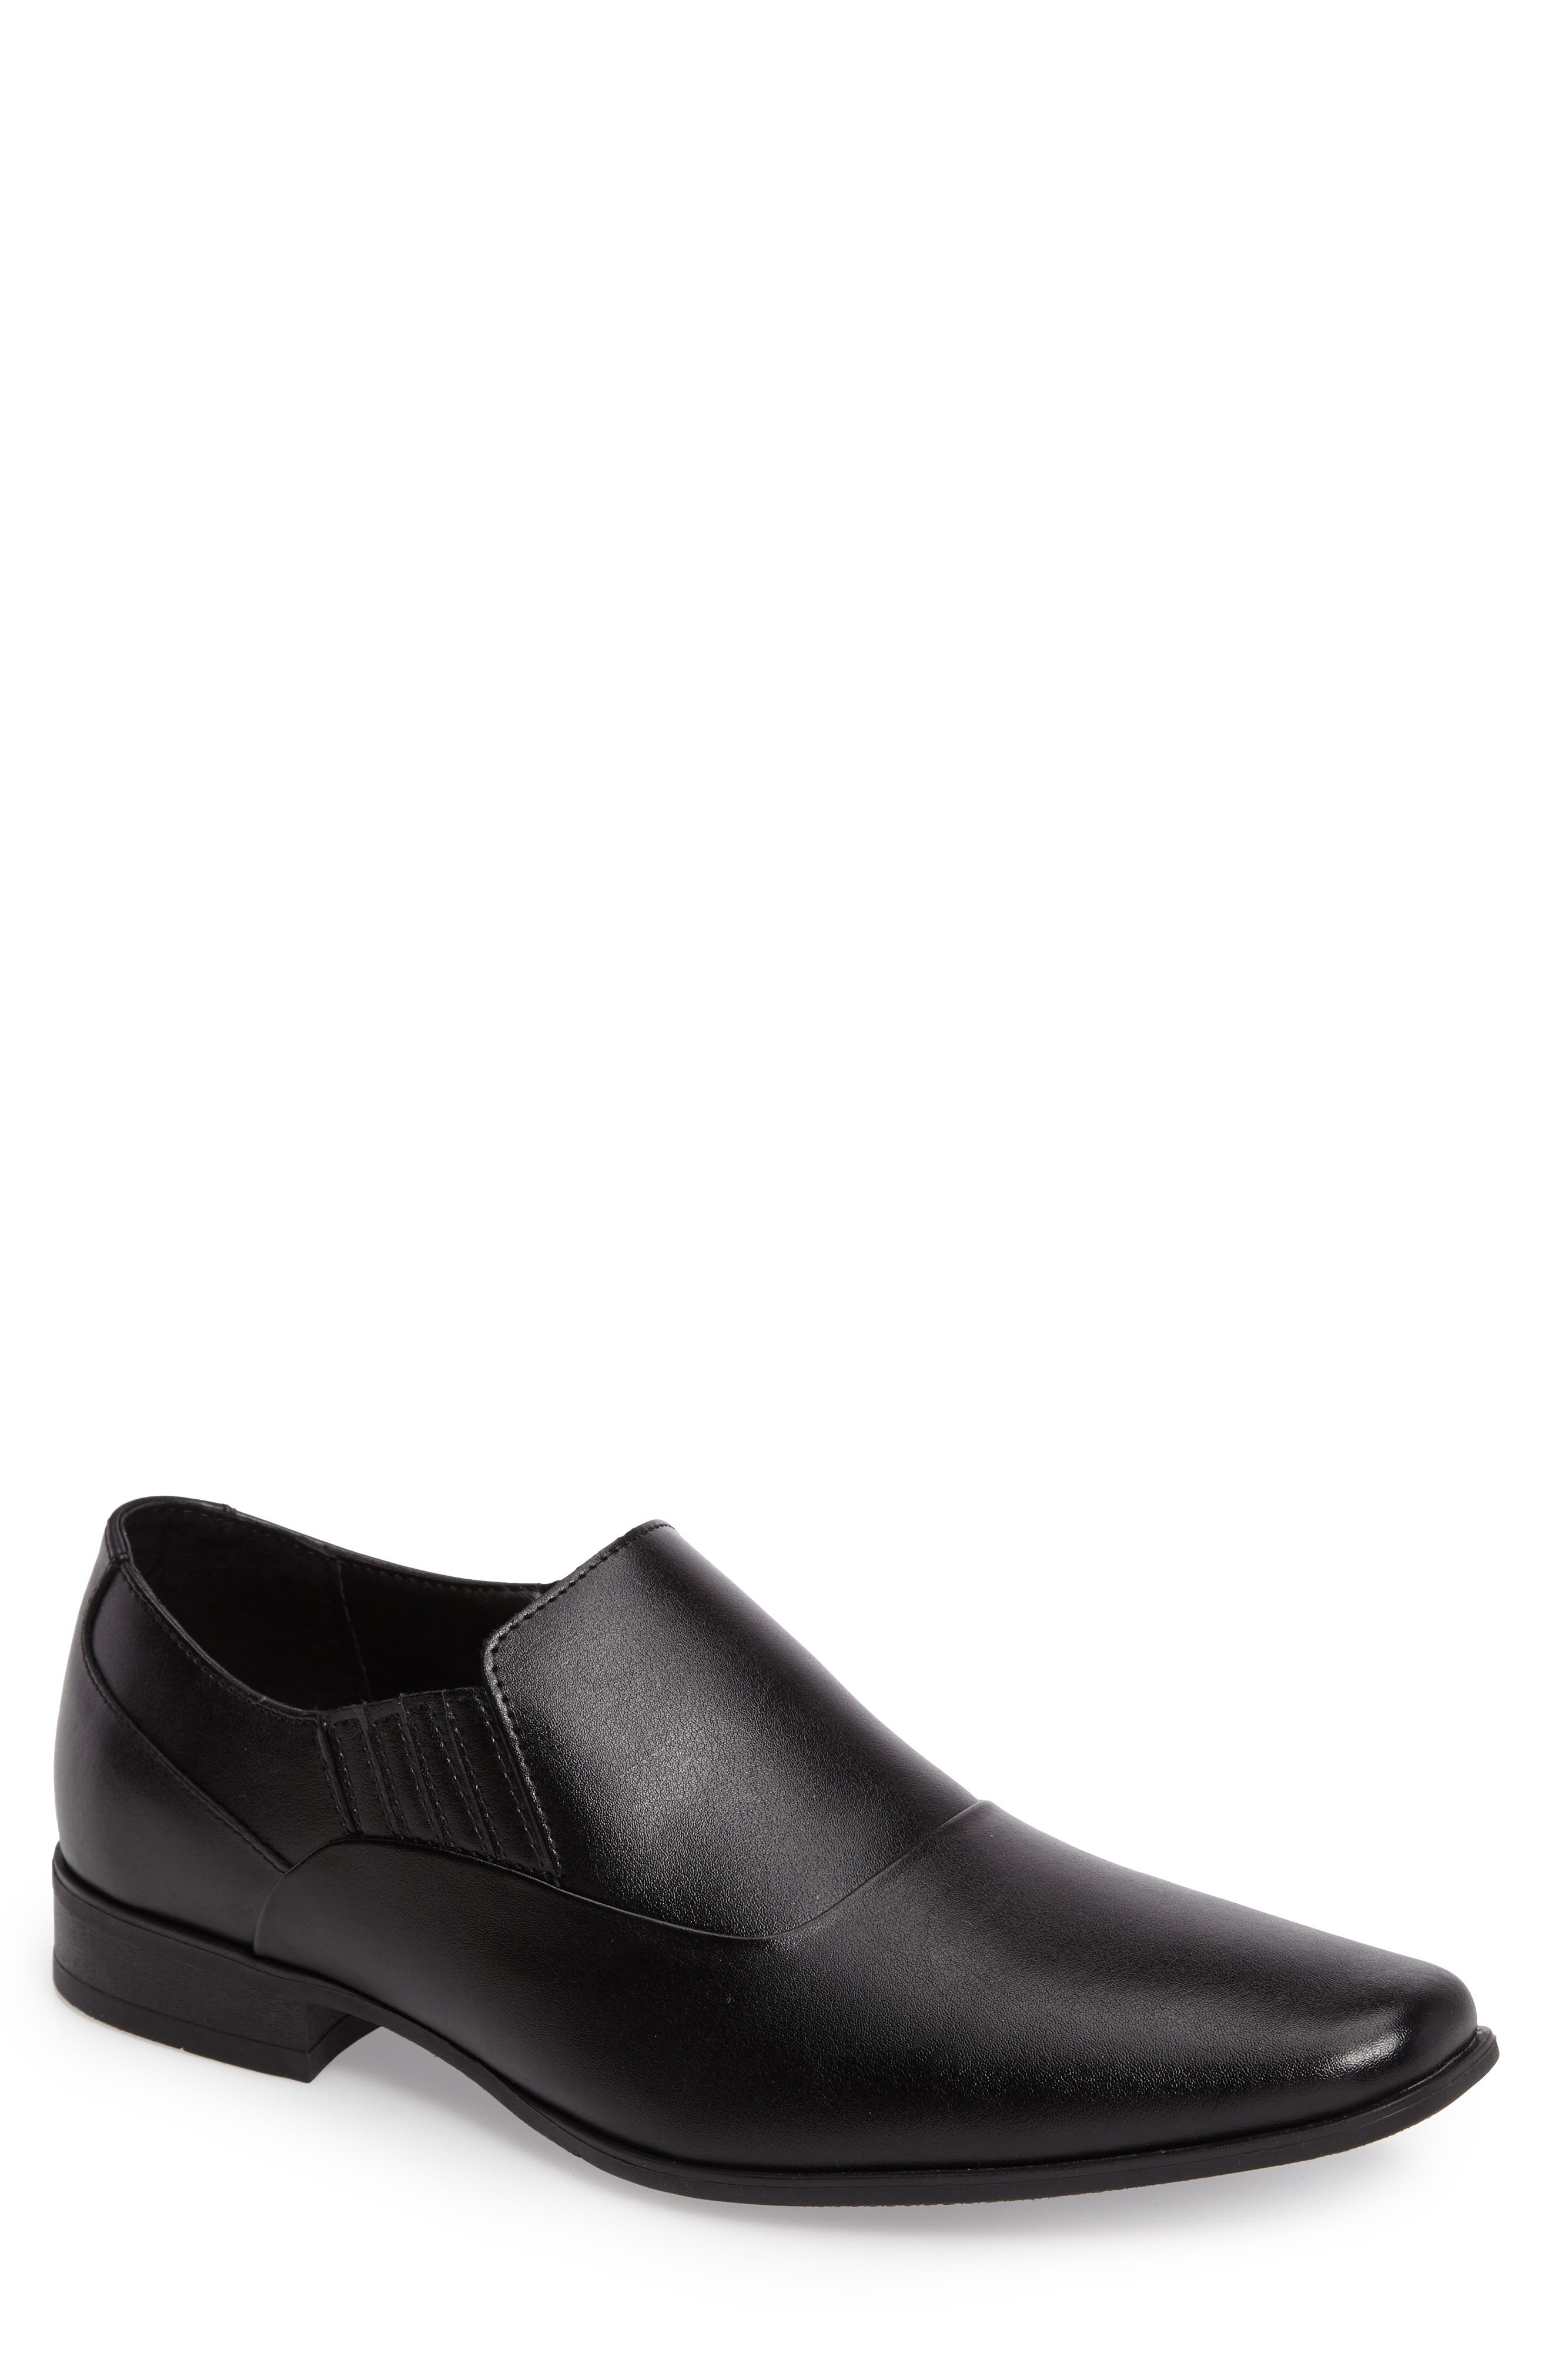 Main Image - Calvin Klein Bartel Square-Toe Venetian Loafer (Men)